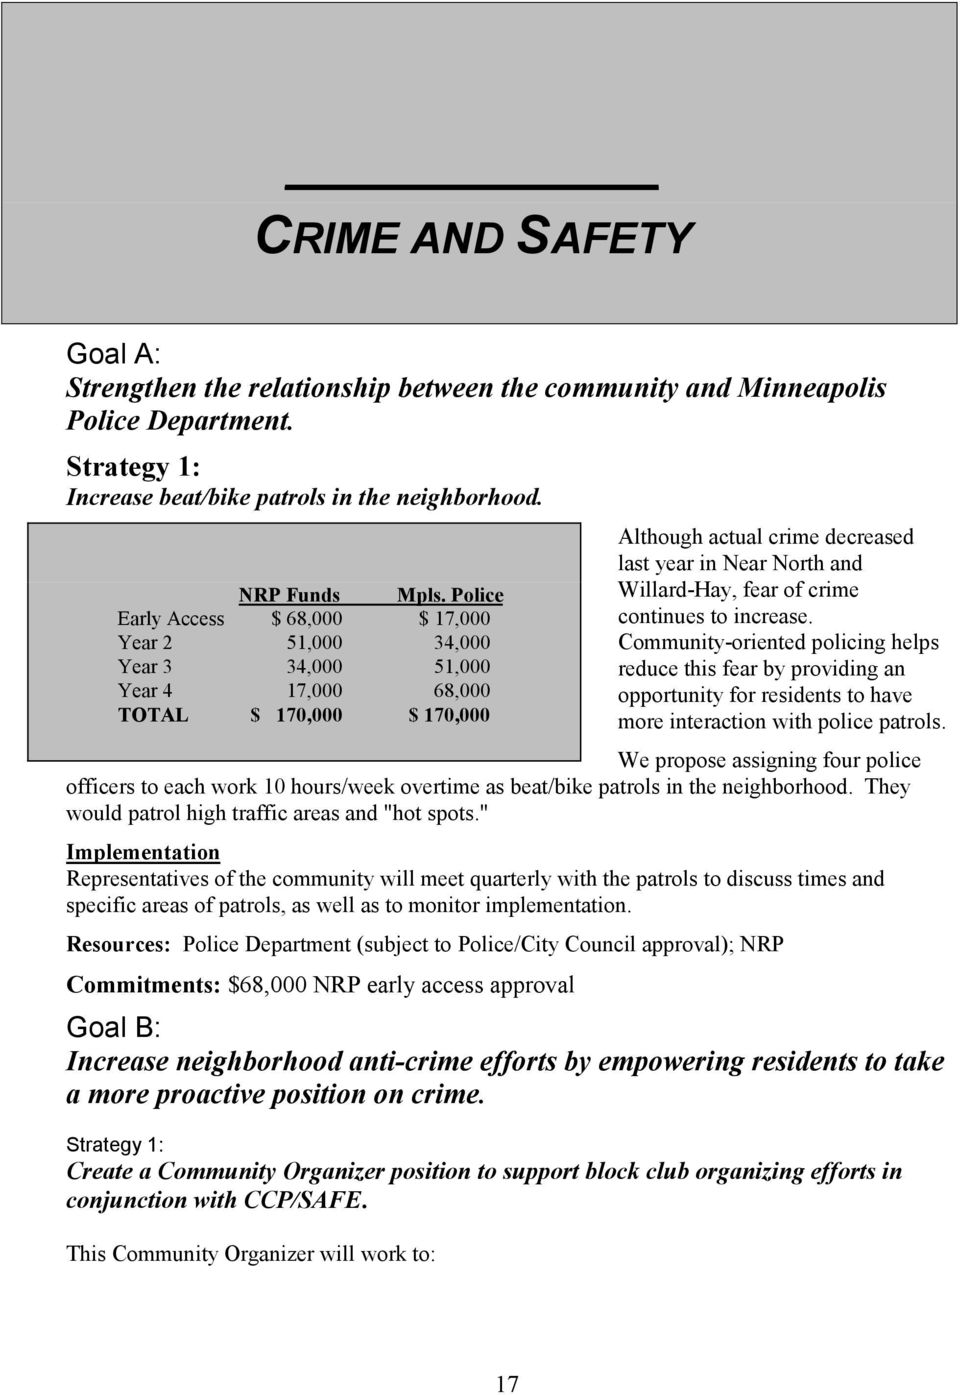 fear of crime continues to increase. Community-oriented policing helps reduce this fear by providing an opportunity for residents to have more interaction with police patrols.